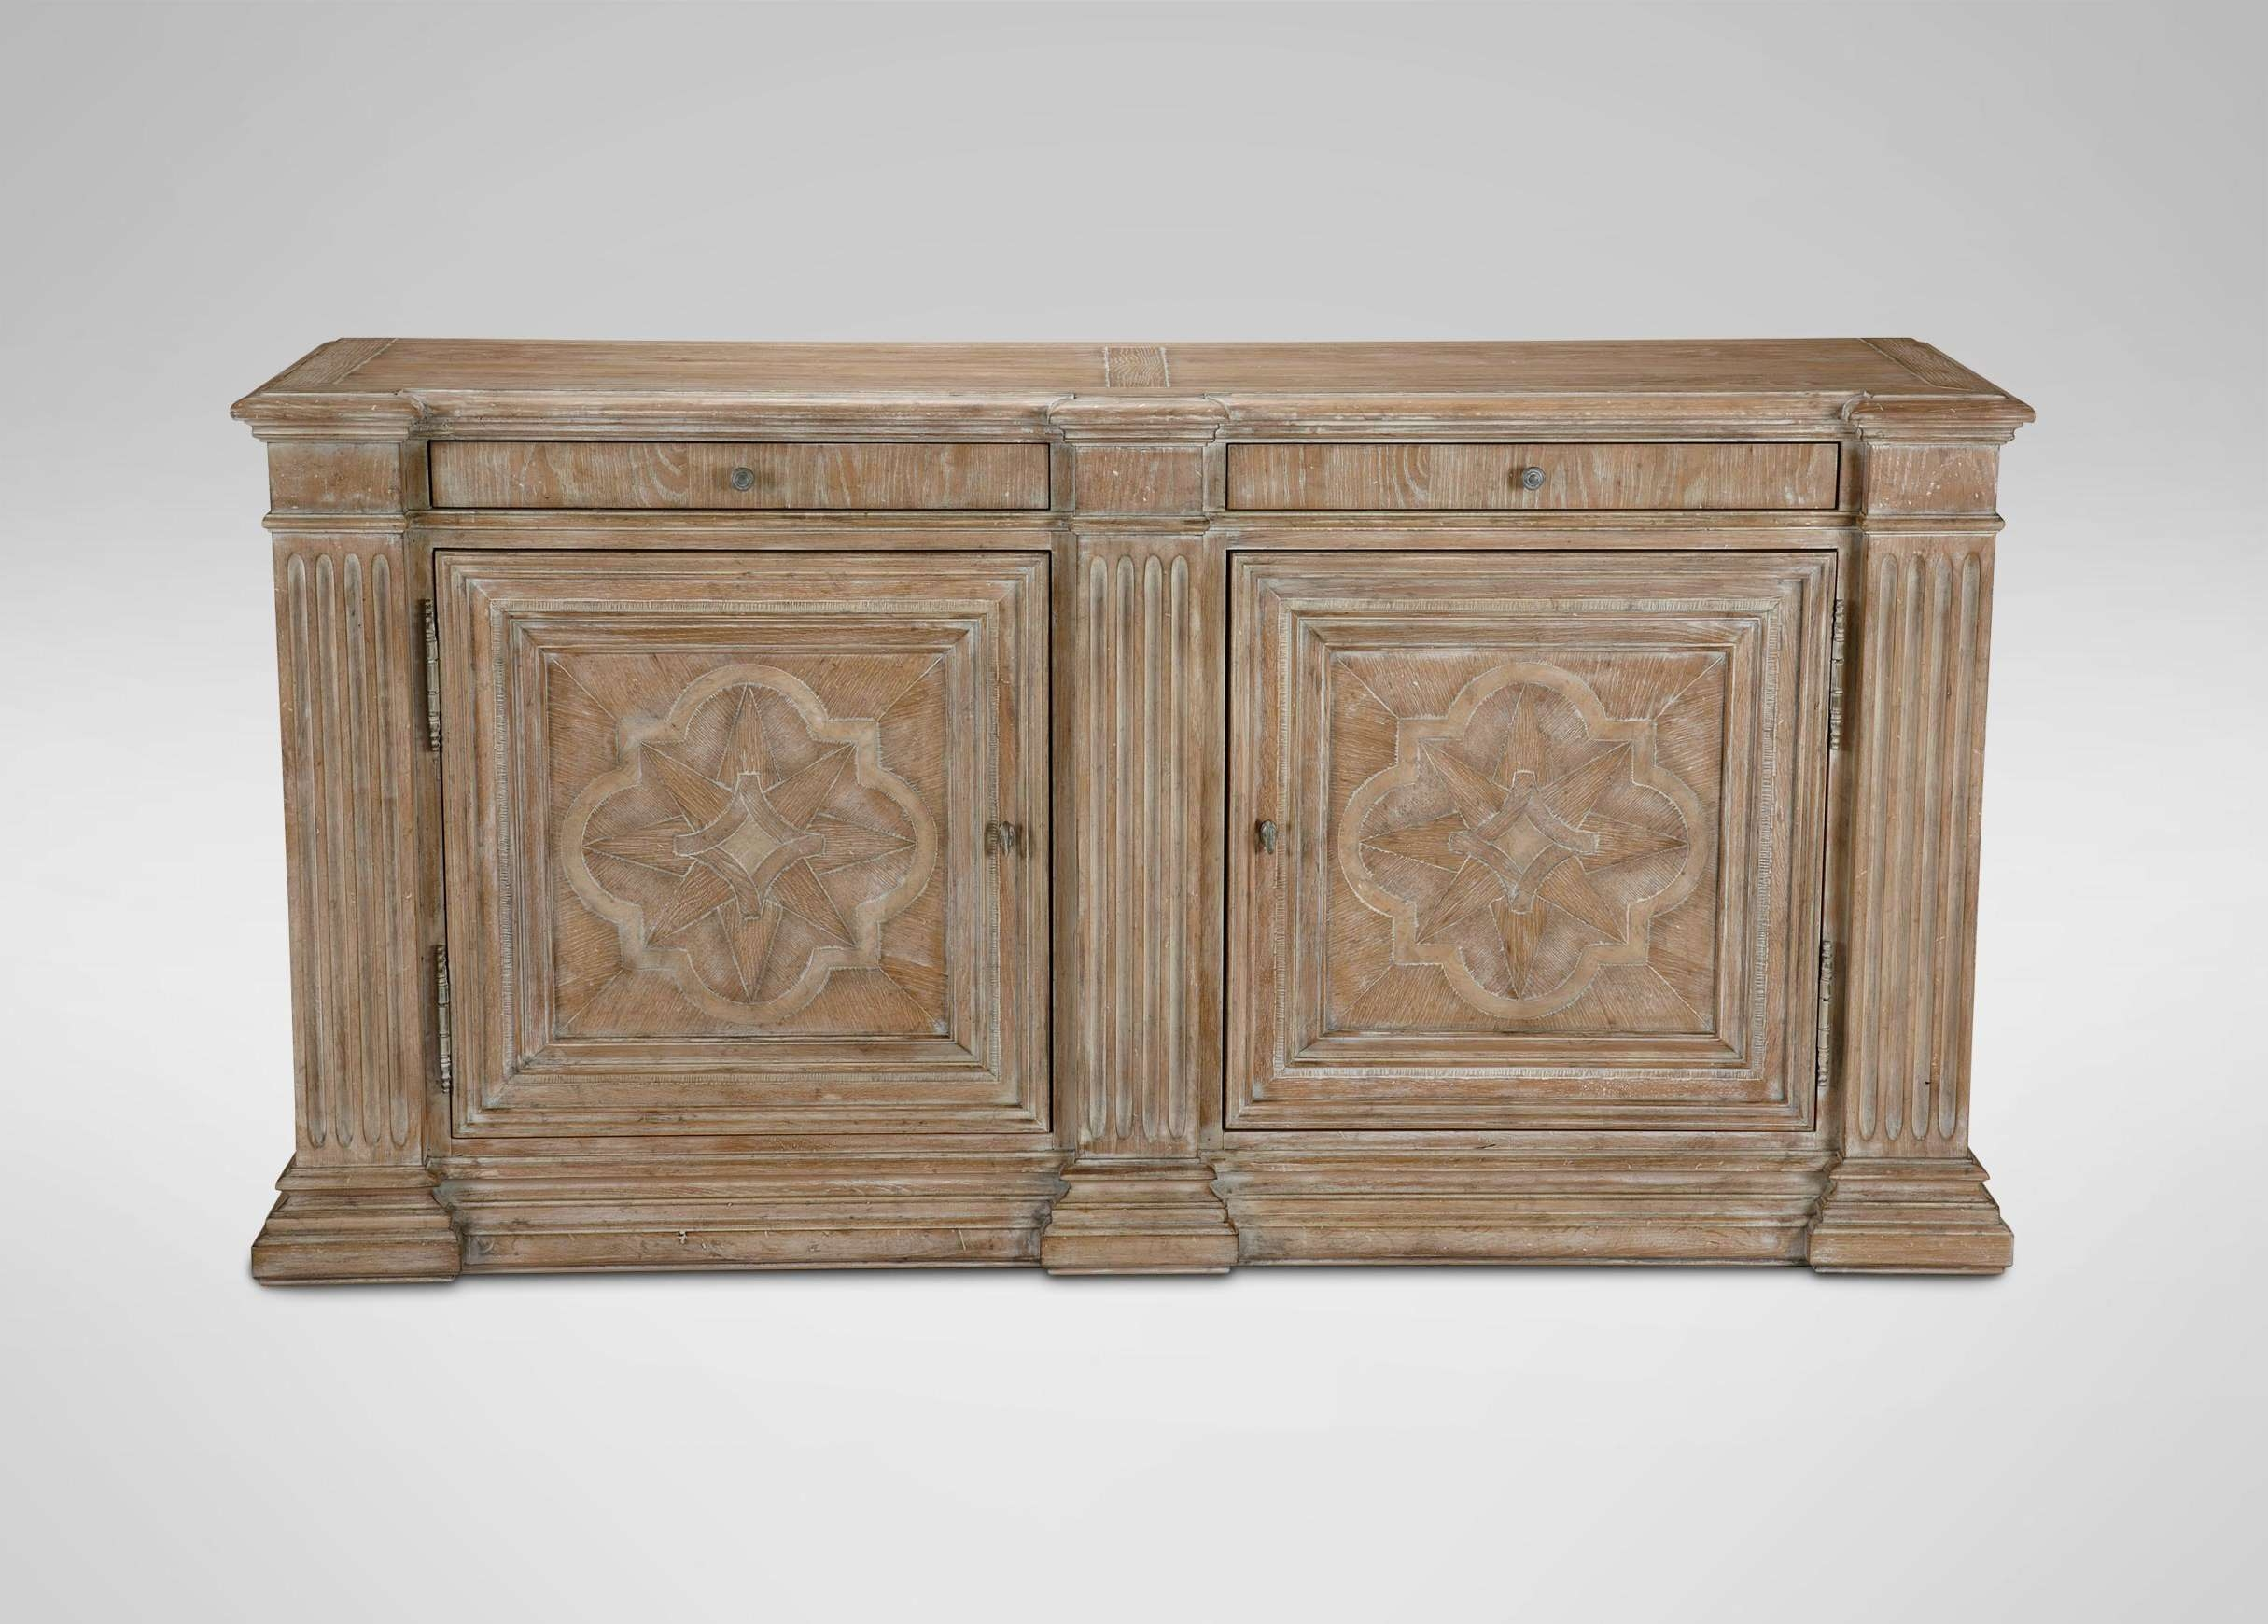 Shop Buffet Storage, Sideboards & Servers | Ethan Allen Throughout Ethan Allen Sideboards (View 14 of 20)